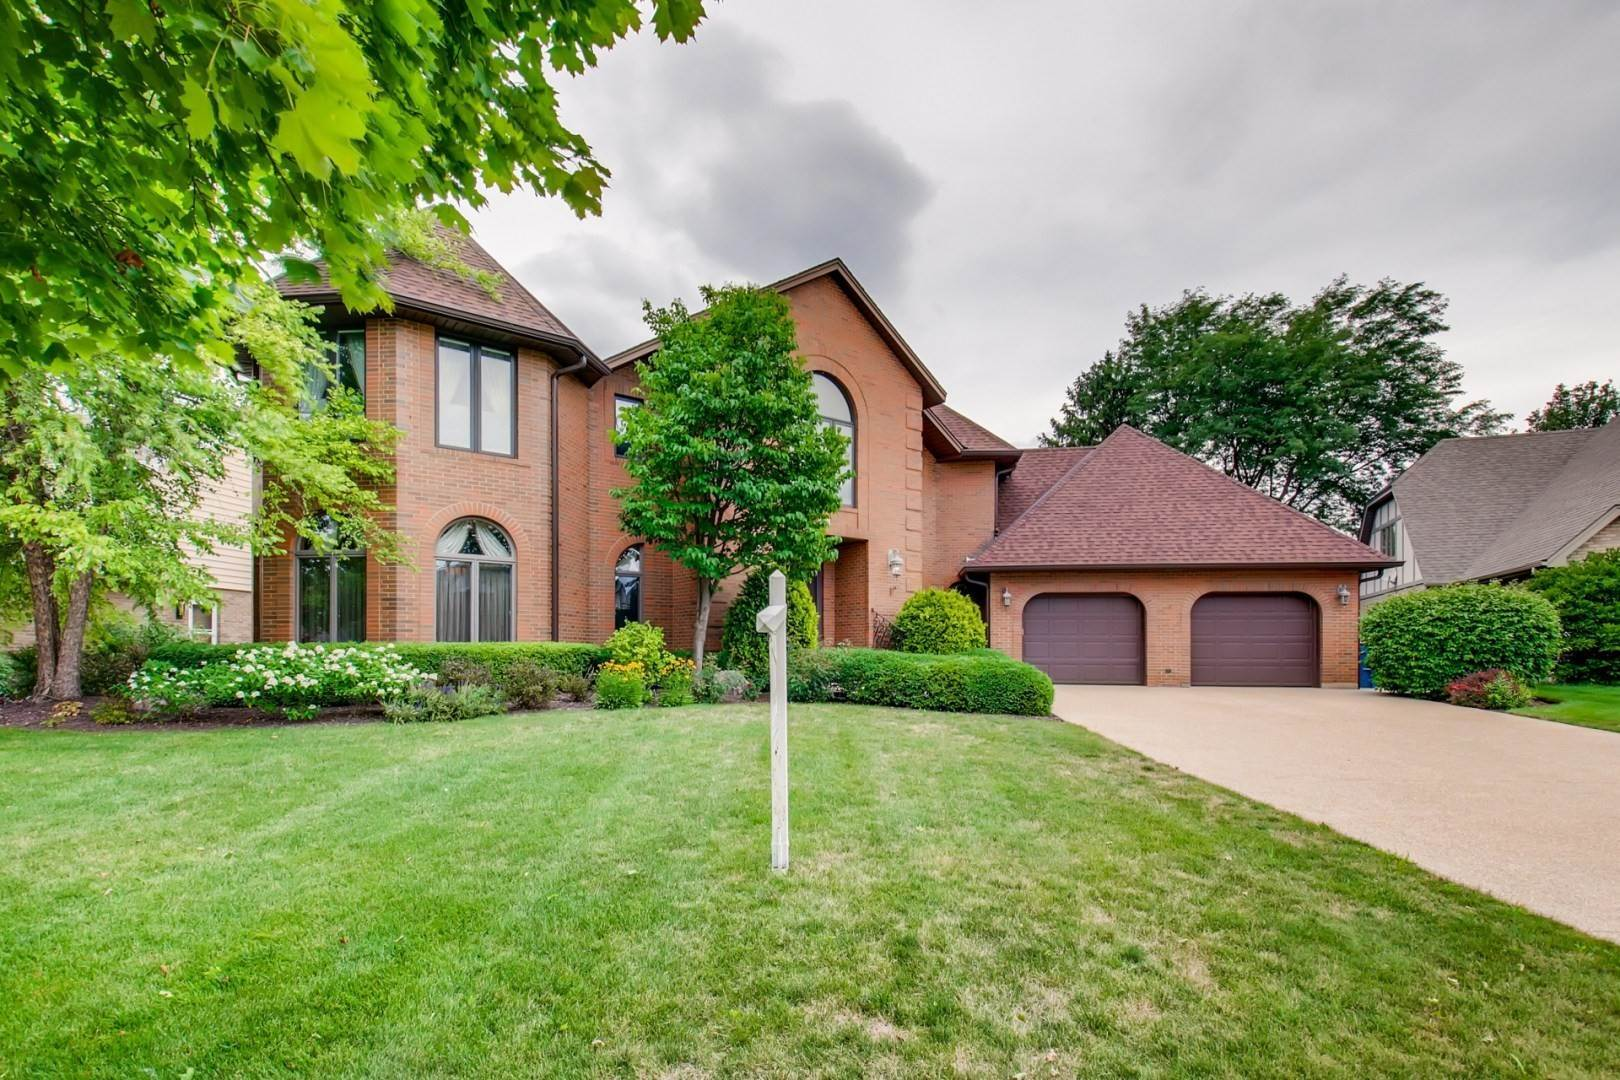 Single Family Homes for Sale at Address Restricted By Mls Schaumburg, Illinois 60193 United States